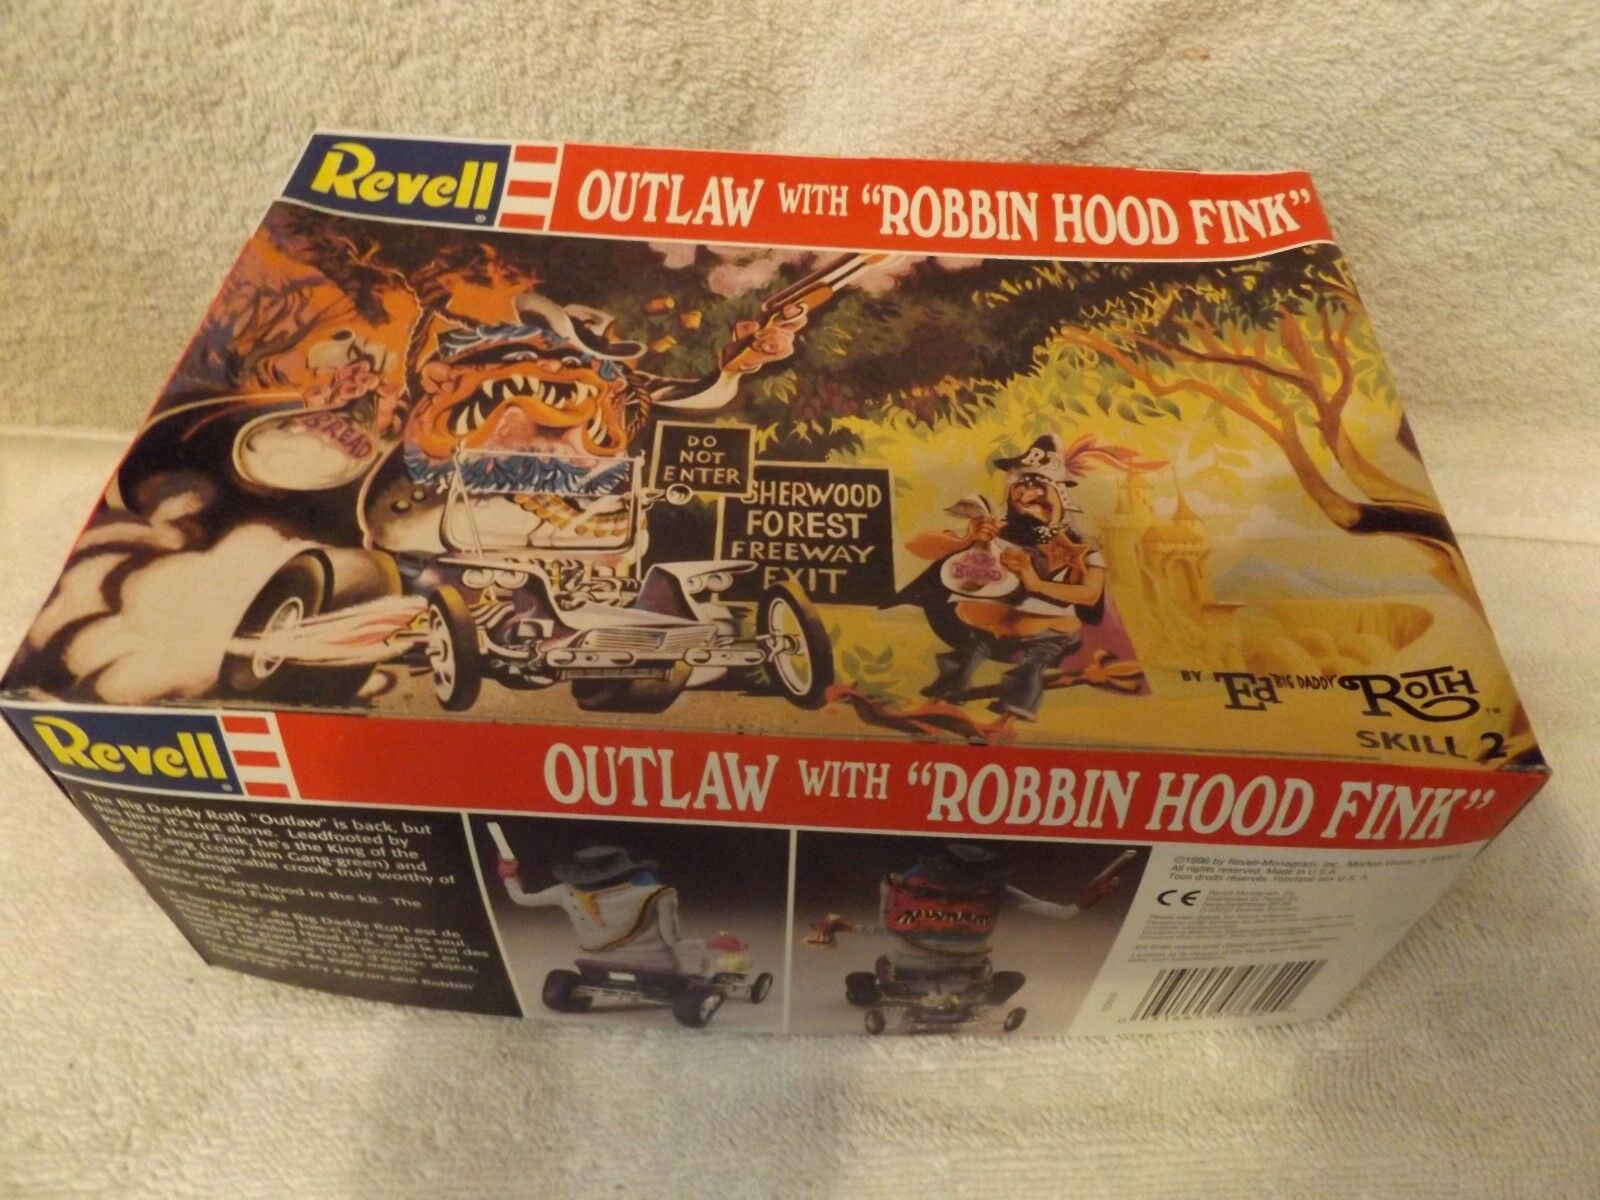 Vintage Model--revell--outlaw mit Robbin Hood FINK--1 24 Scale--partial Kit